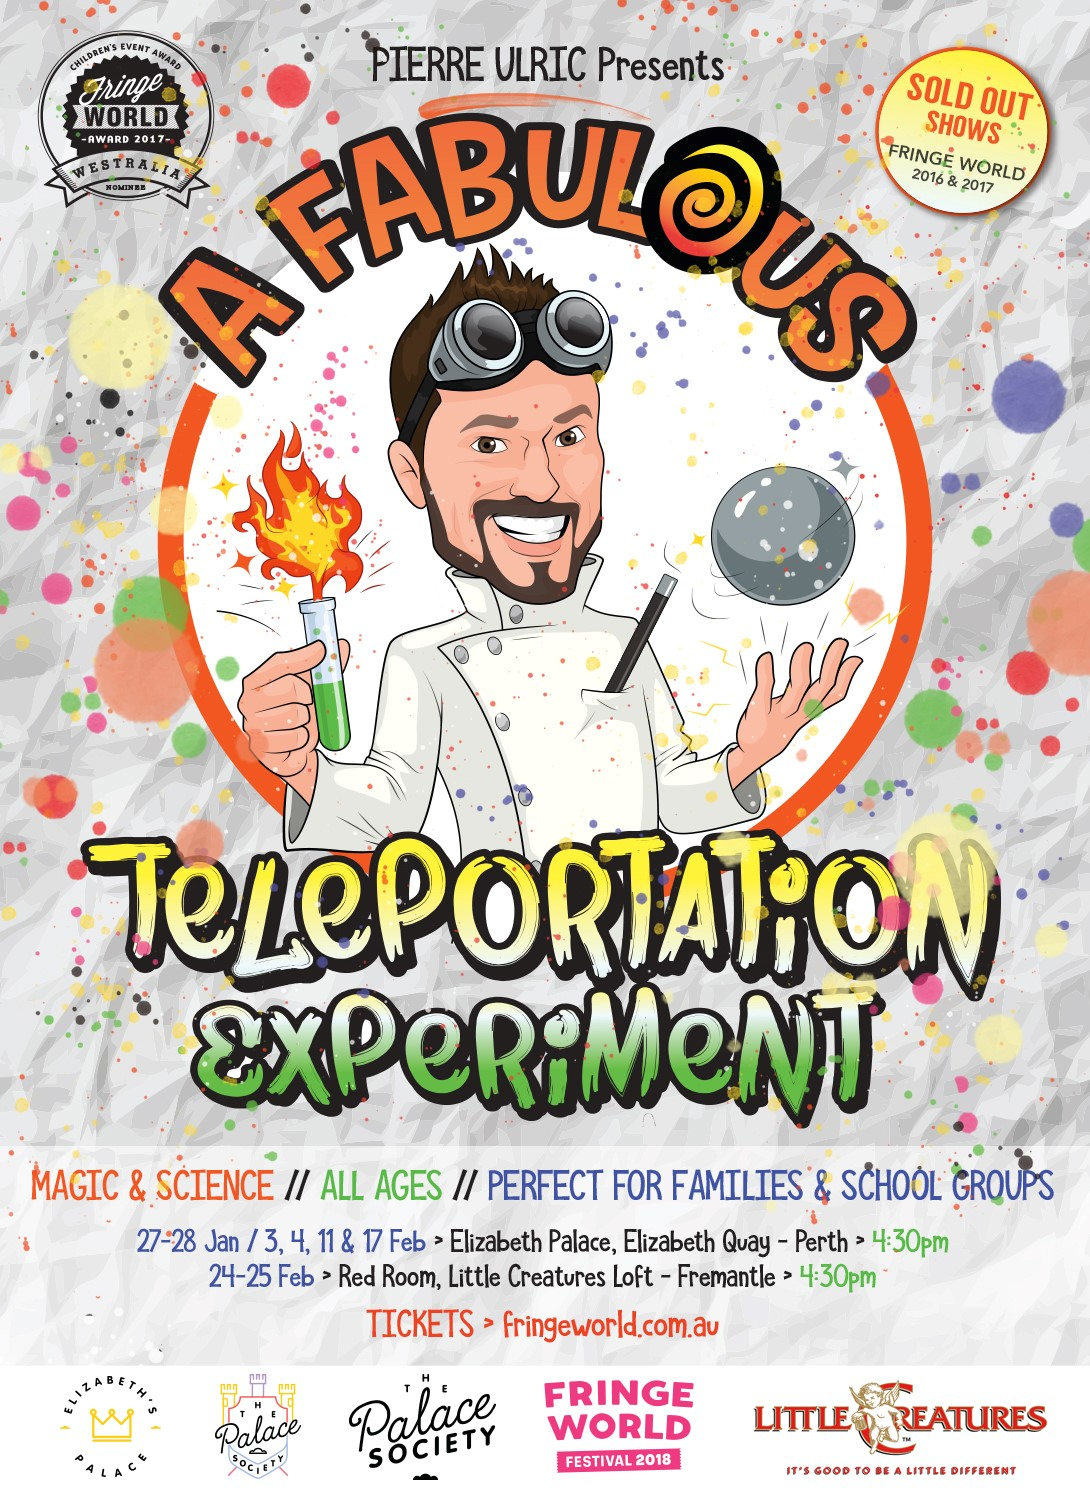 Fringe World: A Fabulous Teleportation Experiment